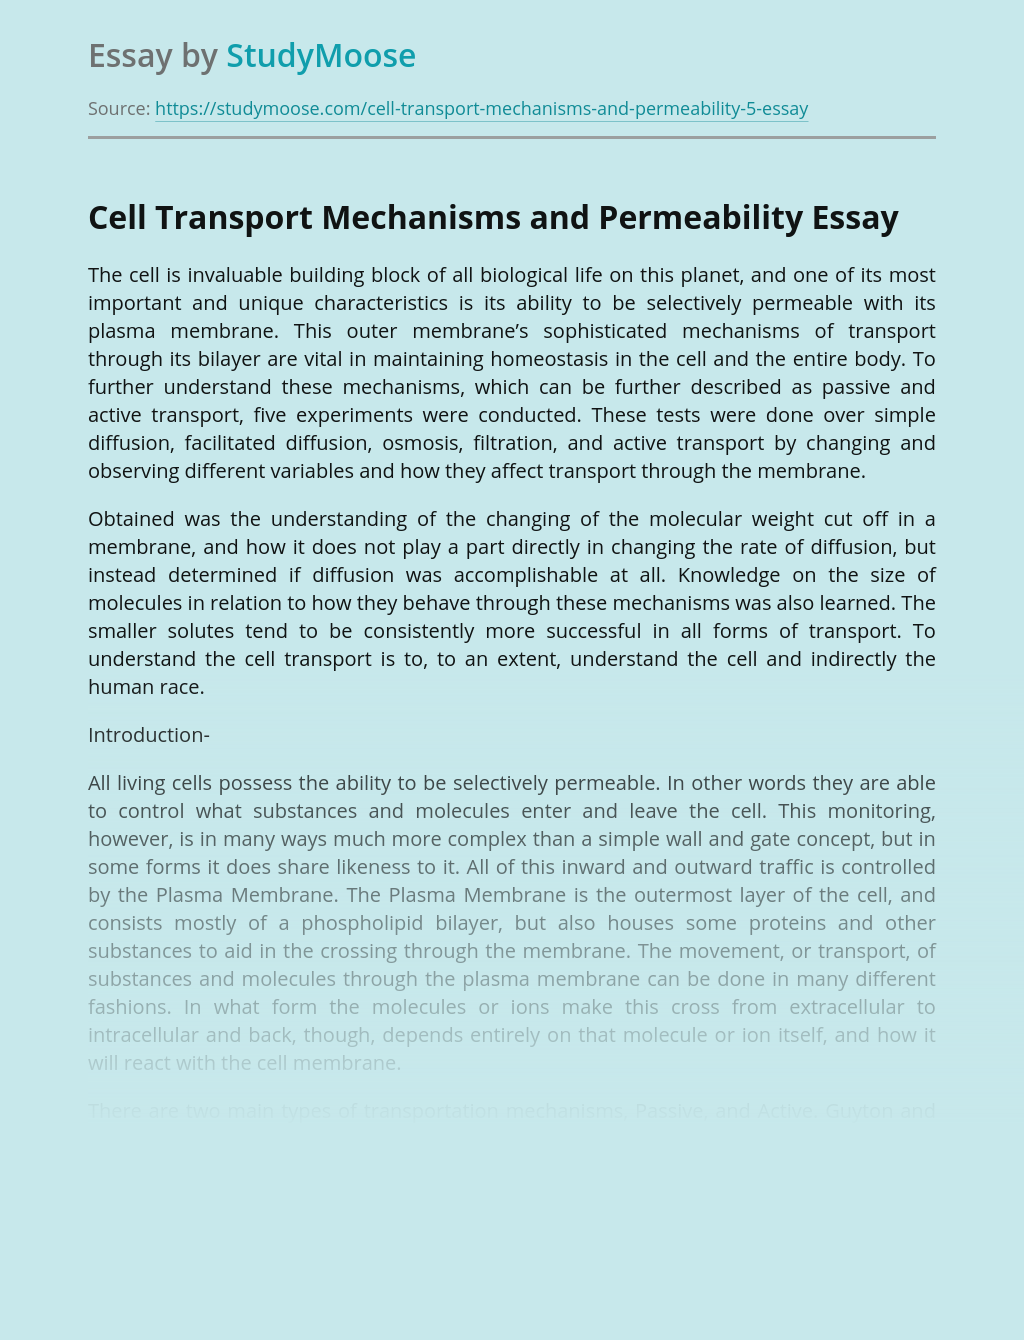 Passive and Active Cell Transport Mechanisms